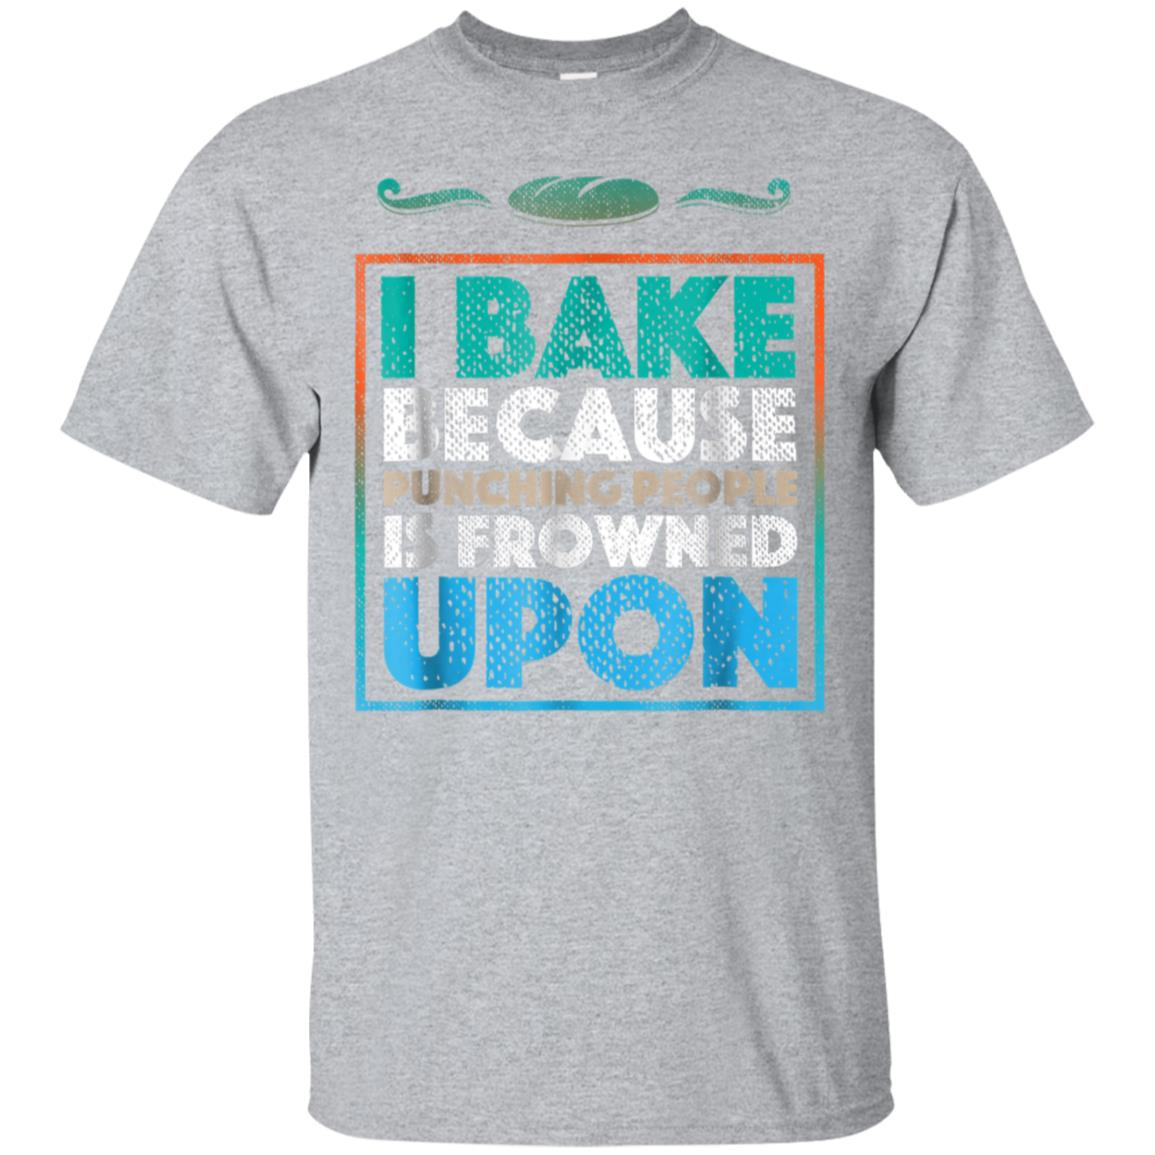 Funny Baking Shirt  Because Punching People Is Frowned Upon 99promocode